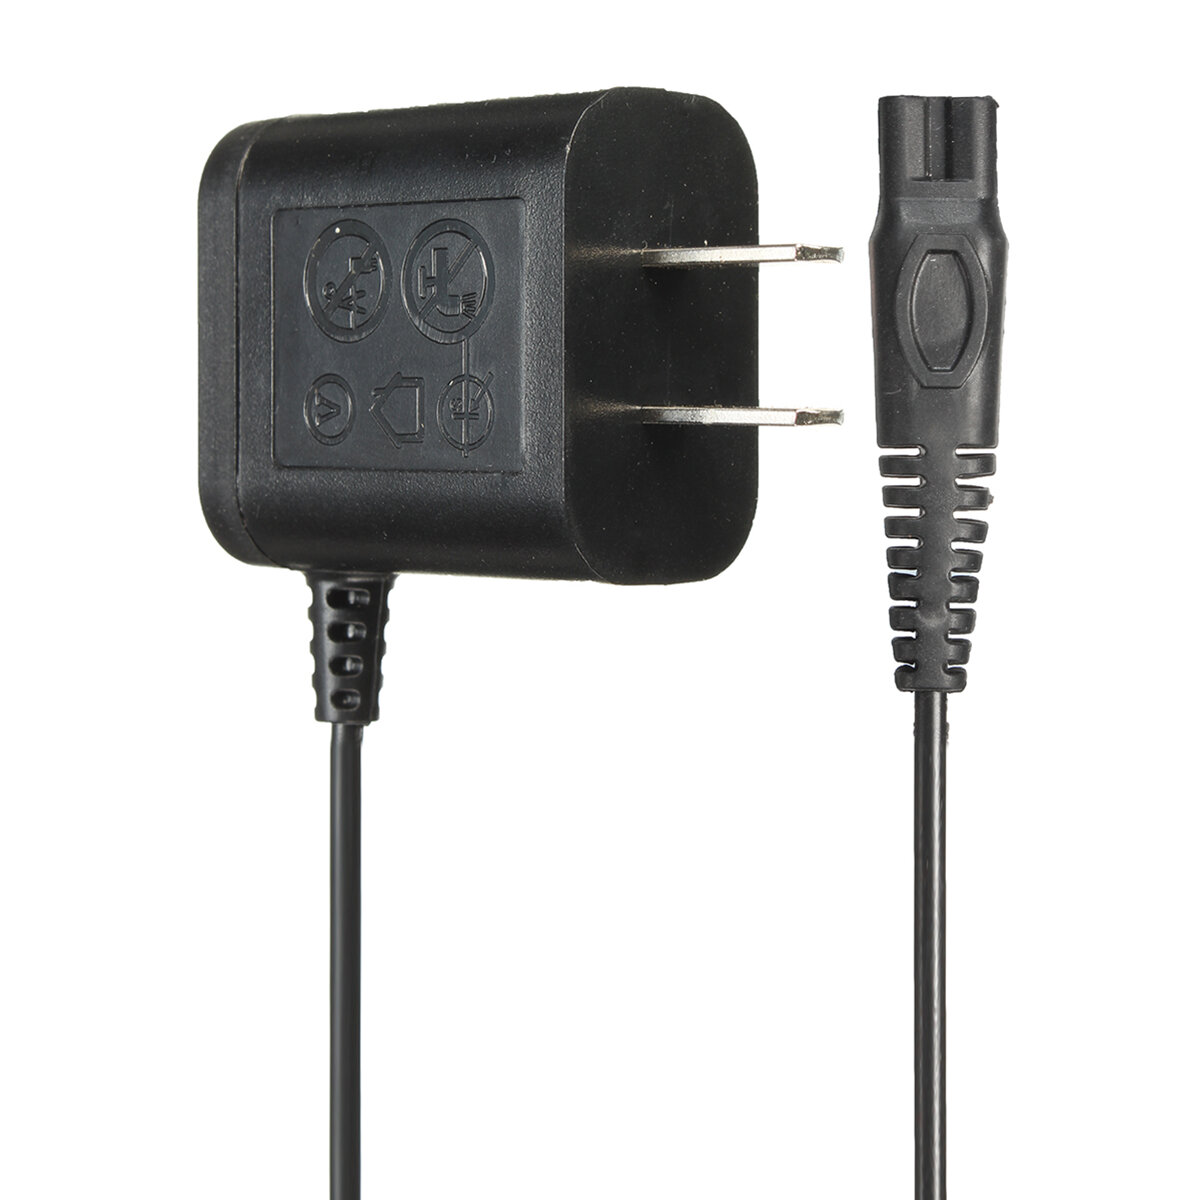 Power Charging Cord Charger For Philips Norelco Shaver HQ8505